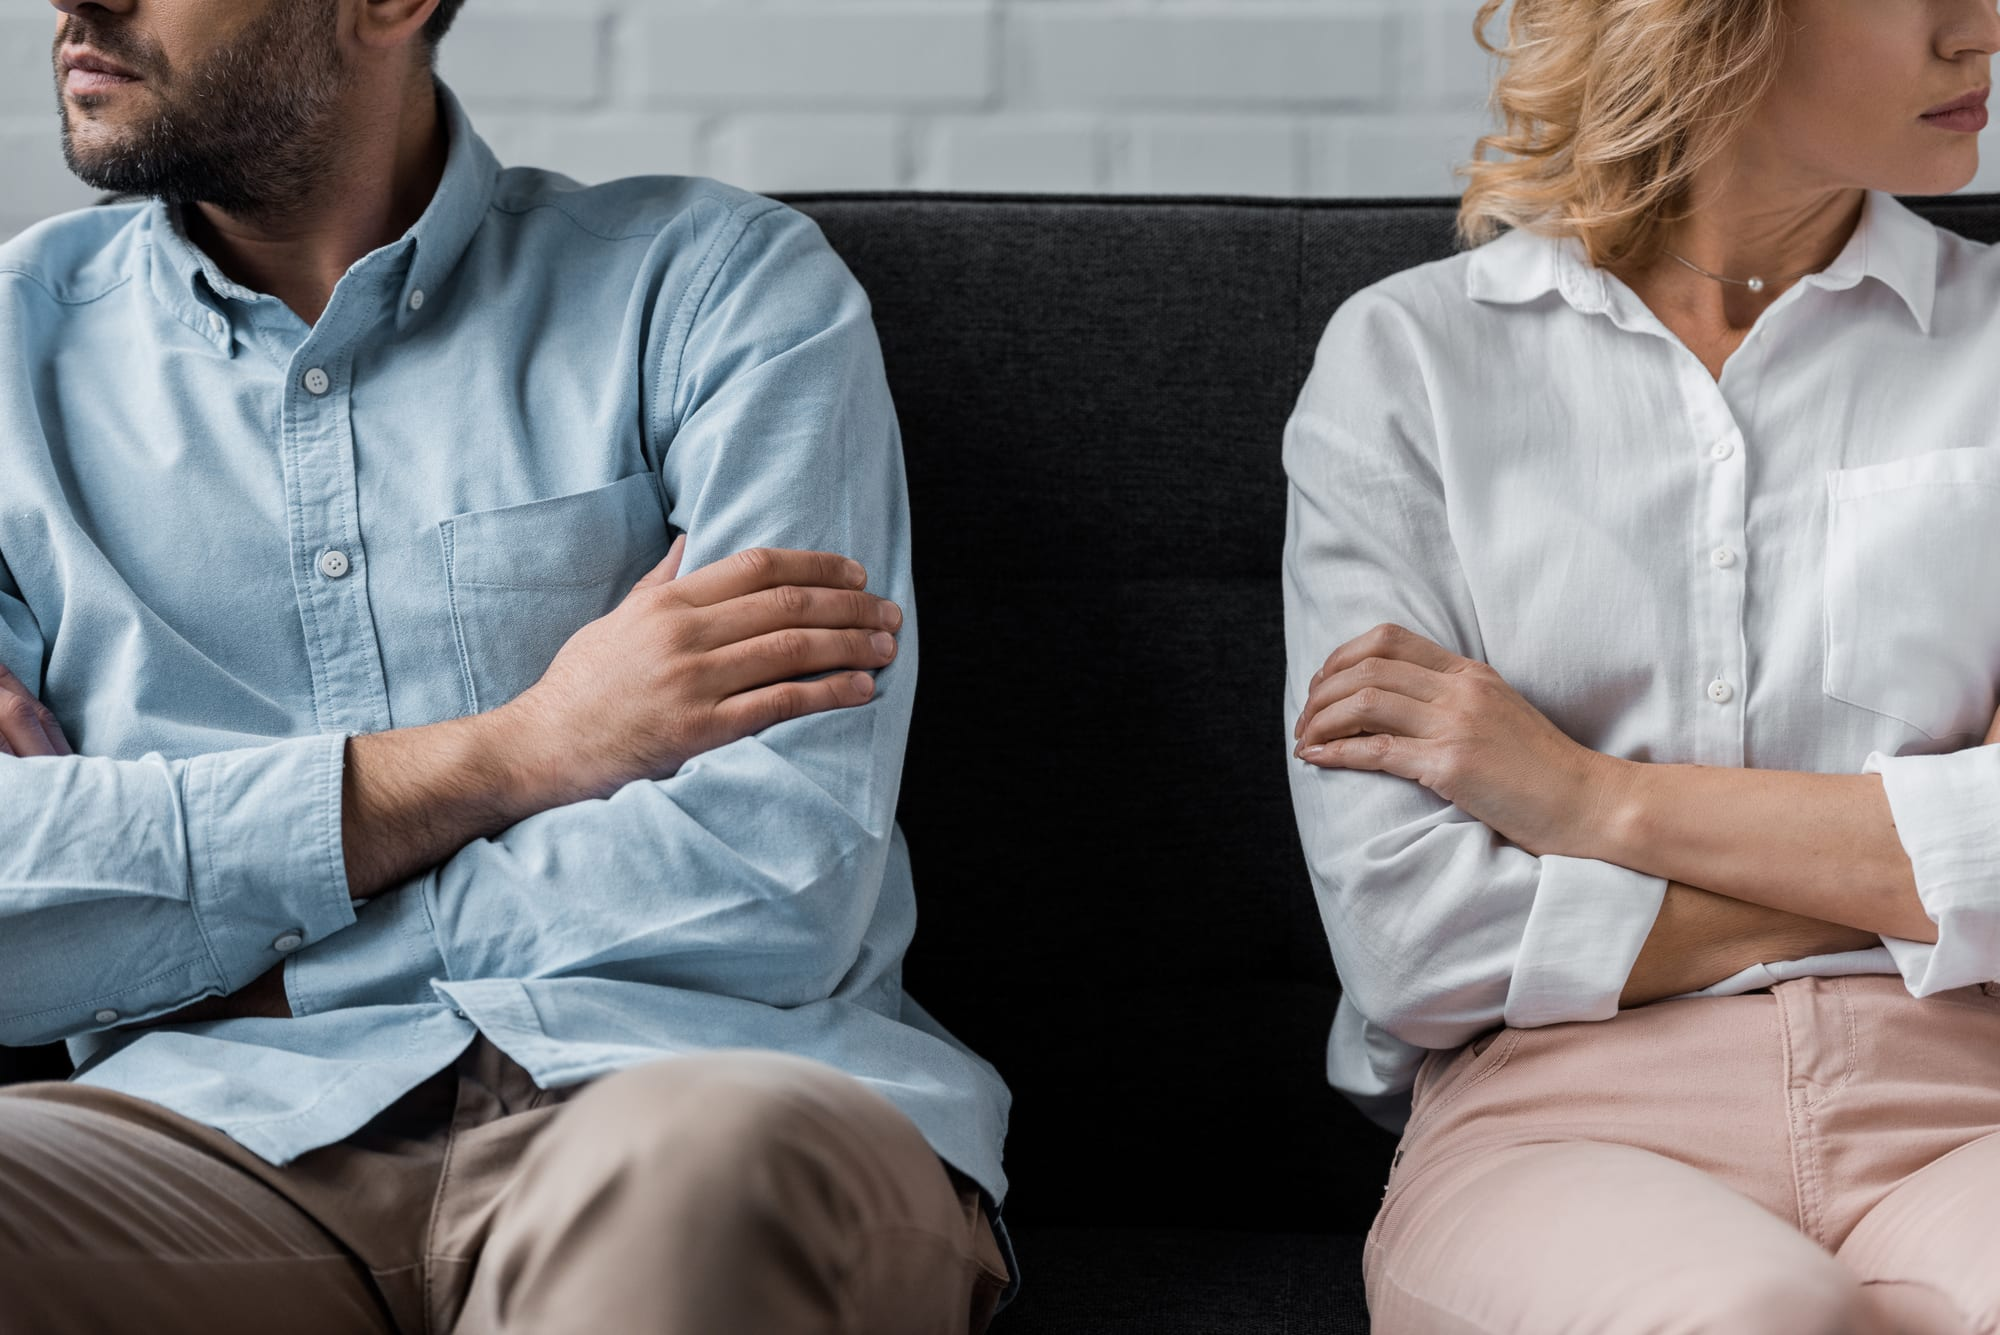 Cropped photo of man and woman on couch, arms crossed, looking away from each other